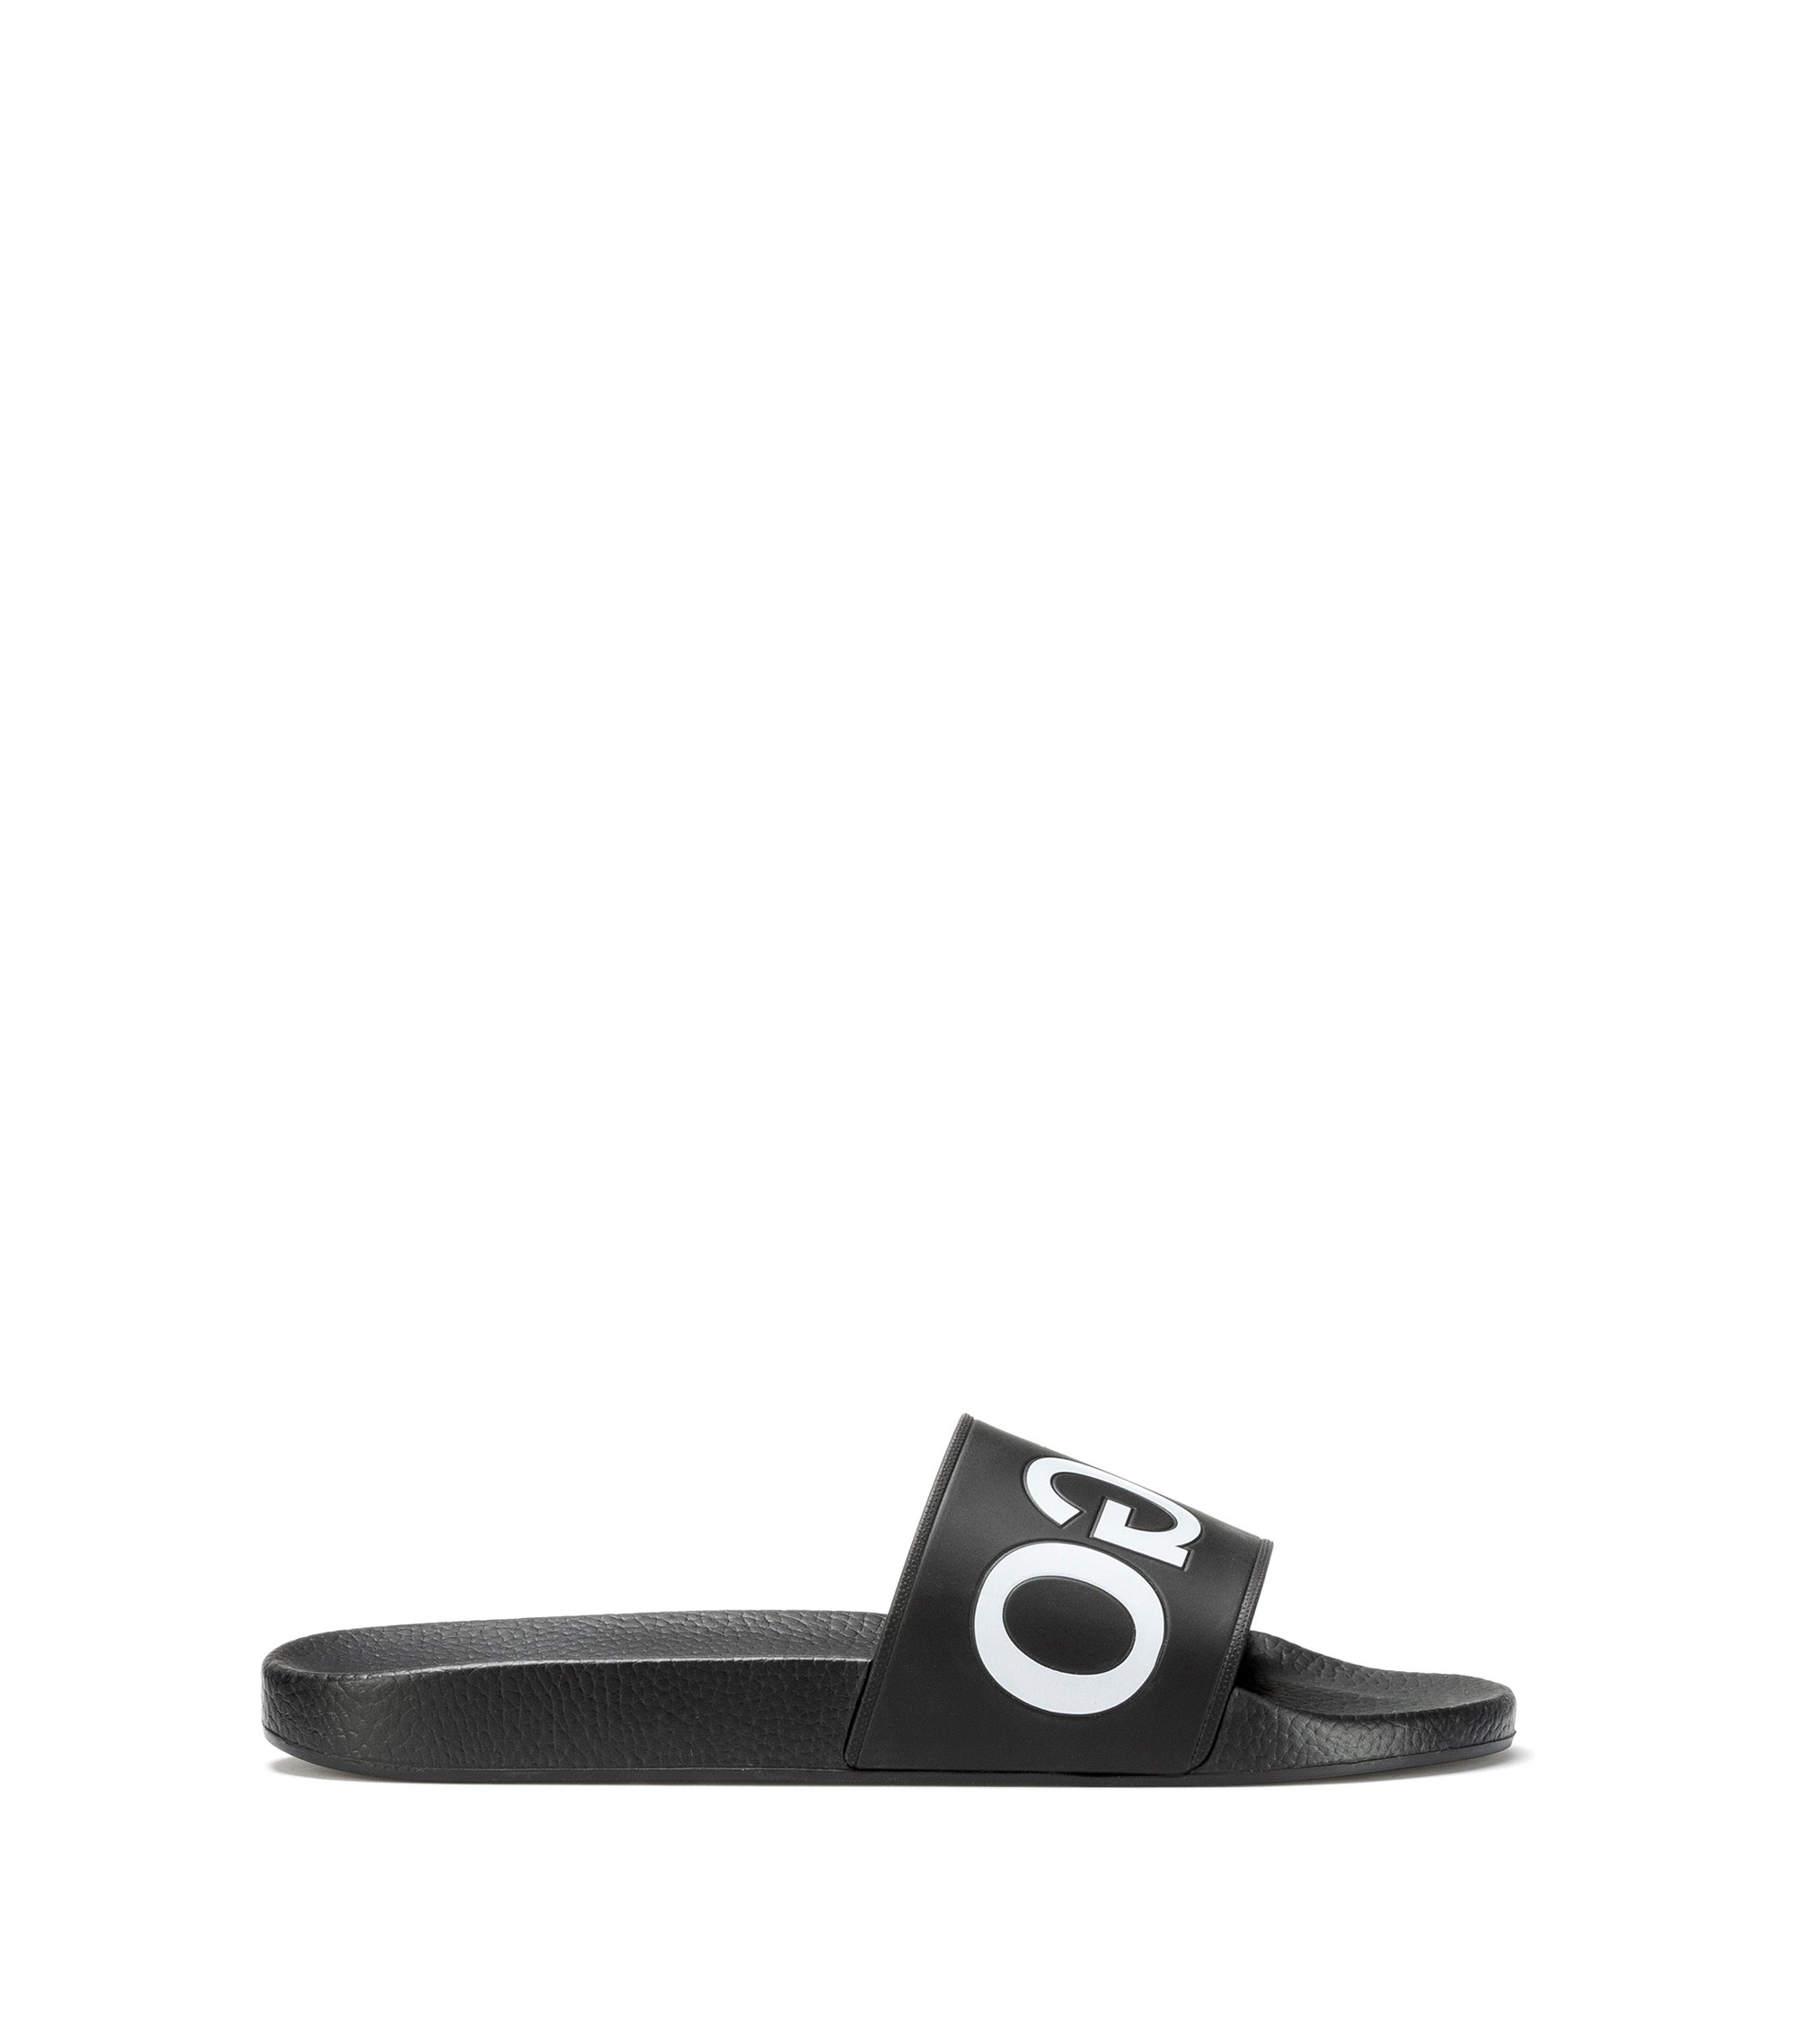 Rubber Slip-On Sandals | Timeout Slip RB, Black